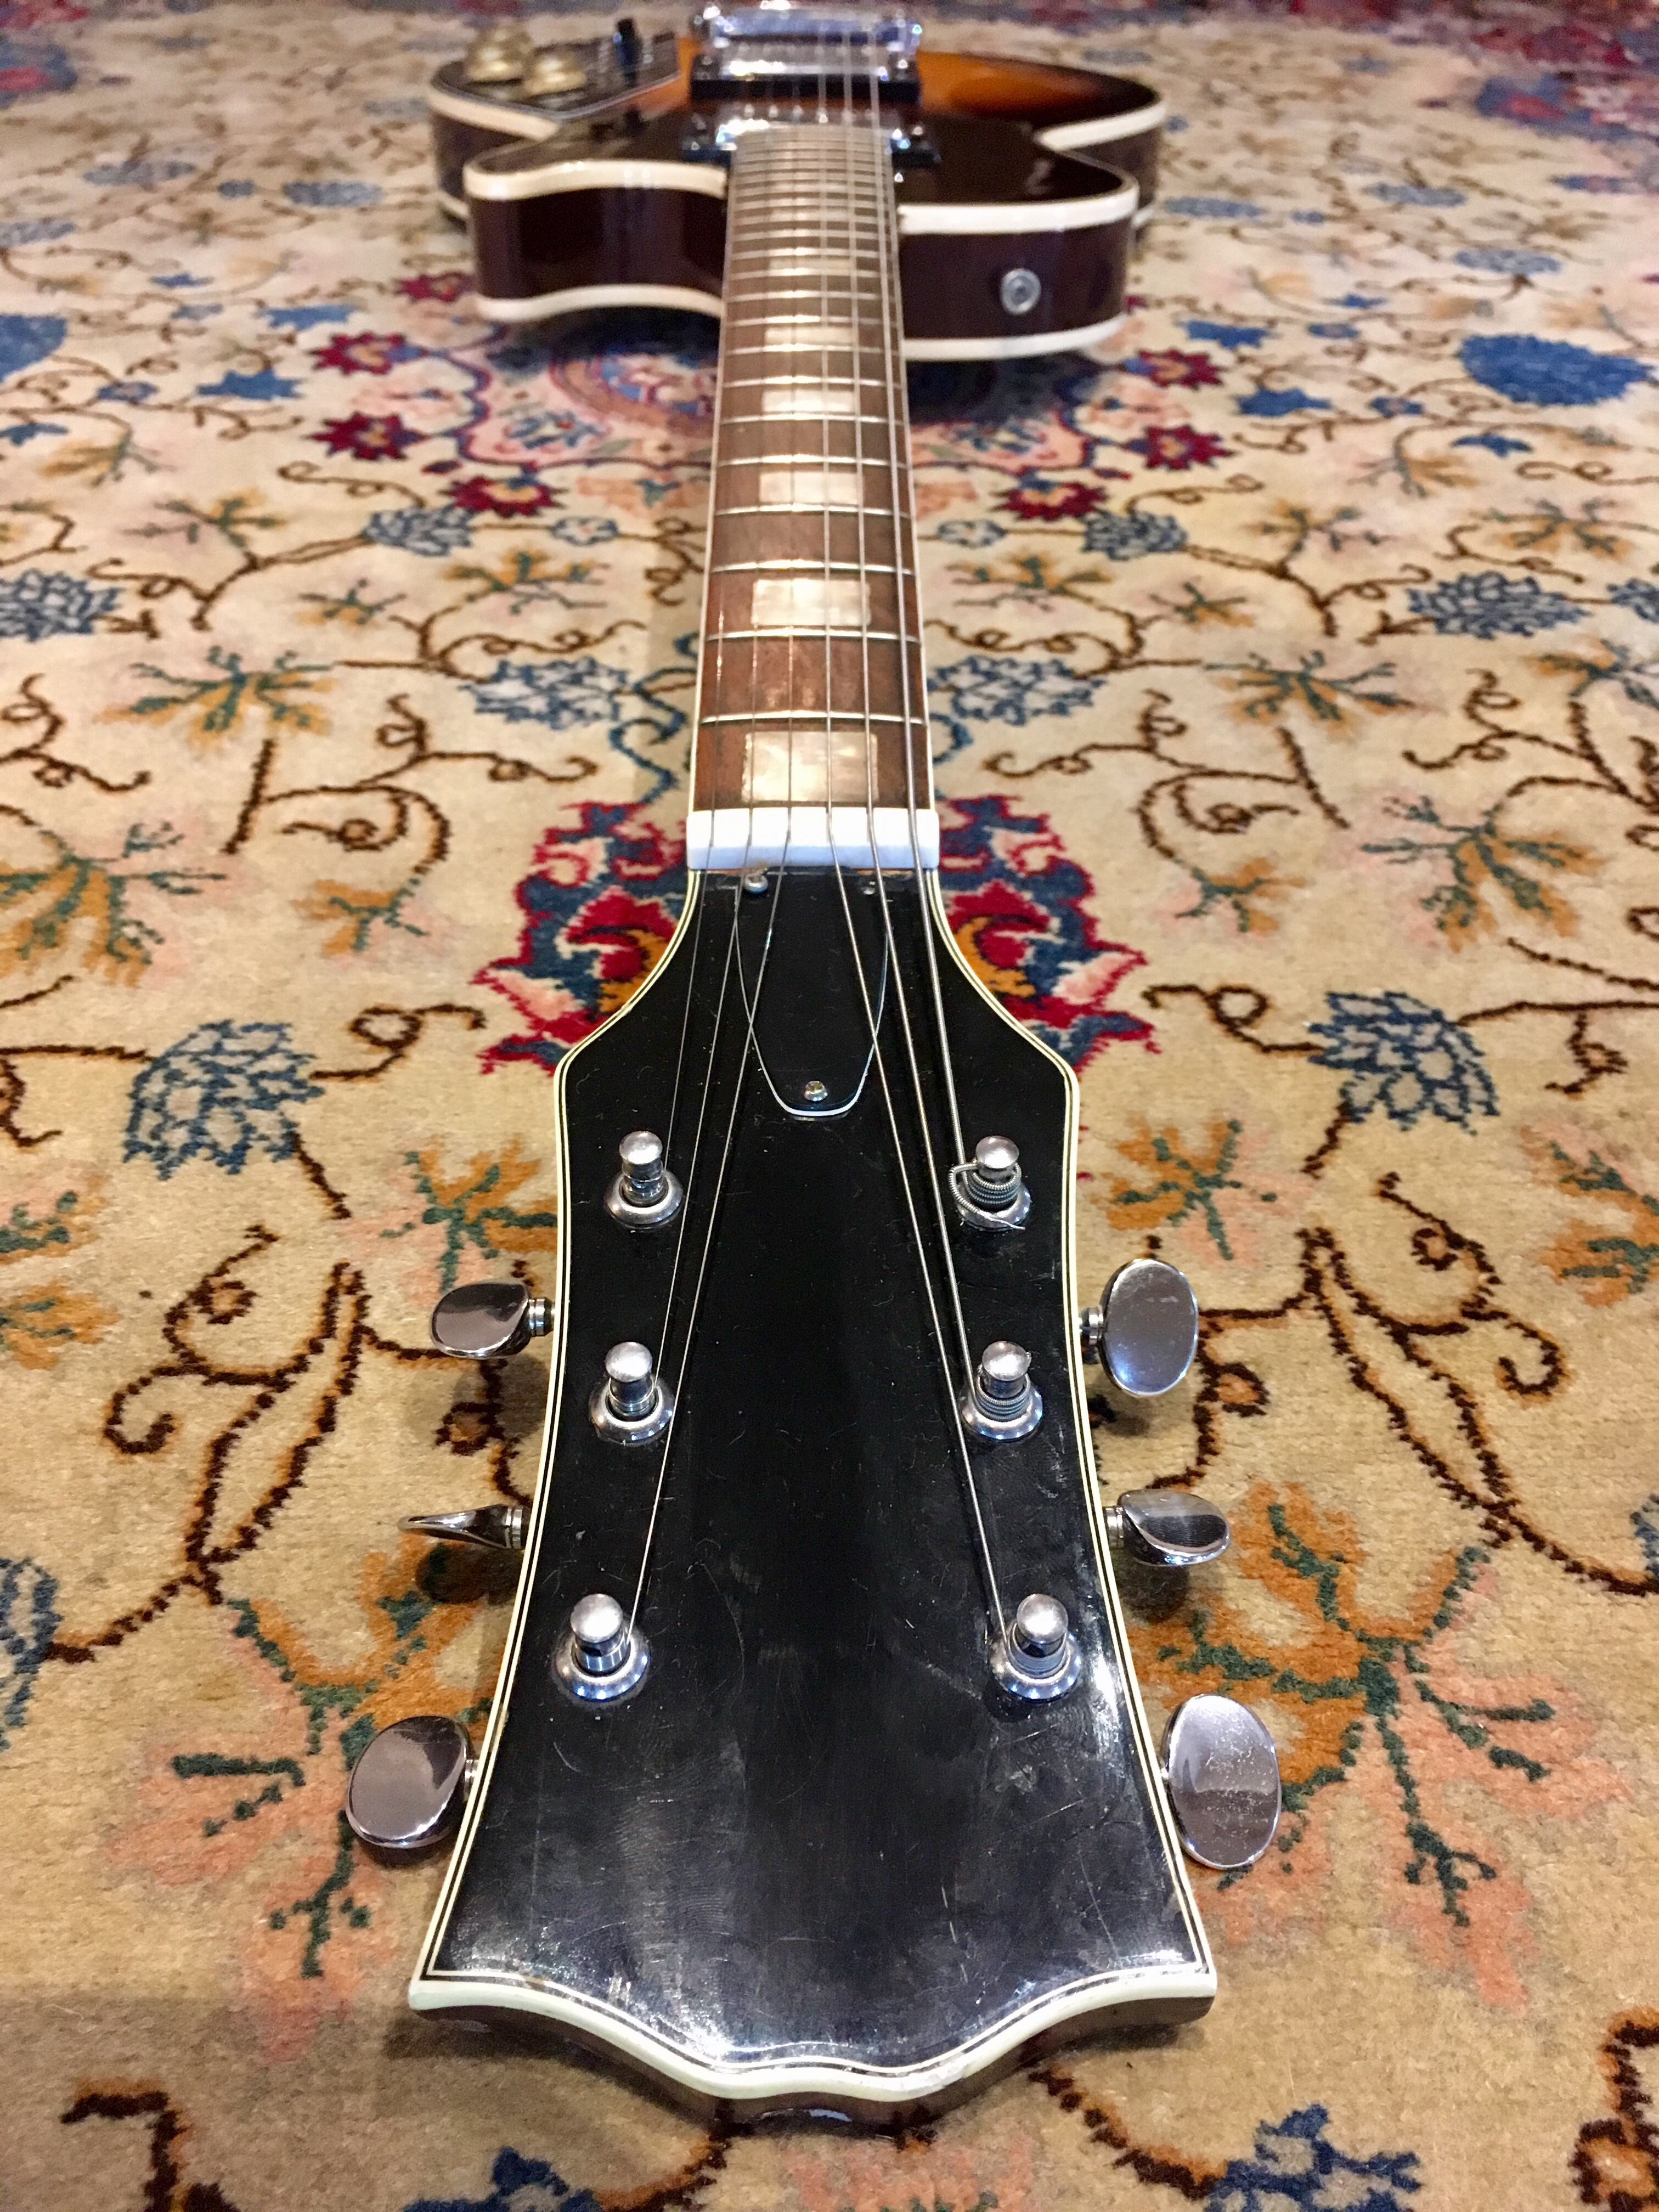 Review Vintage Music Gear Demos And Reviews Sears Silver Tone Guitar On Schematic Of Electric Tremolo The Kay Univox Effector Is An Interesting Rare Piece History But Its Not Difficult To Understand Why Built In Effect Technology Didnt